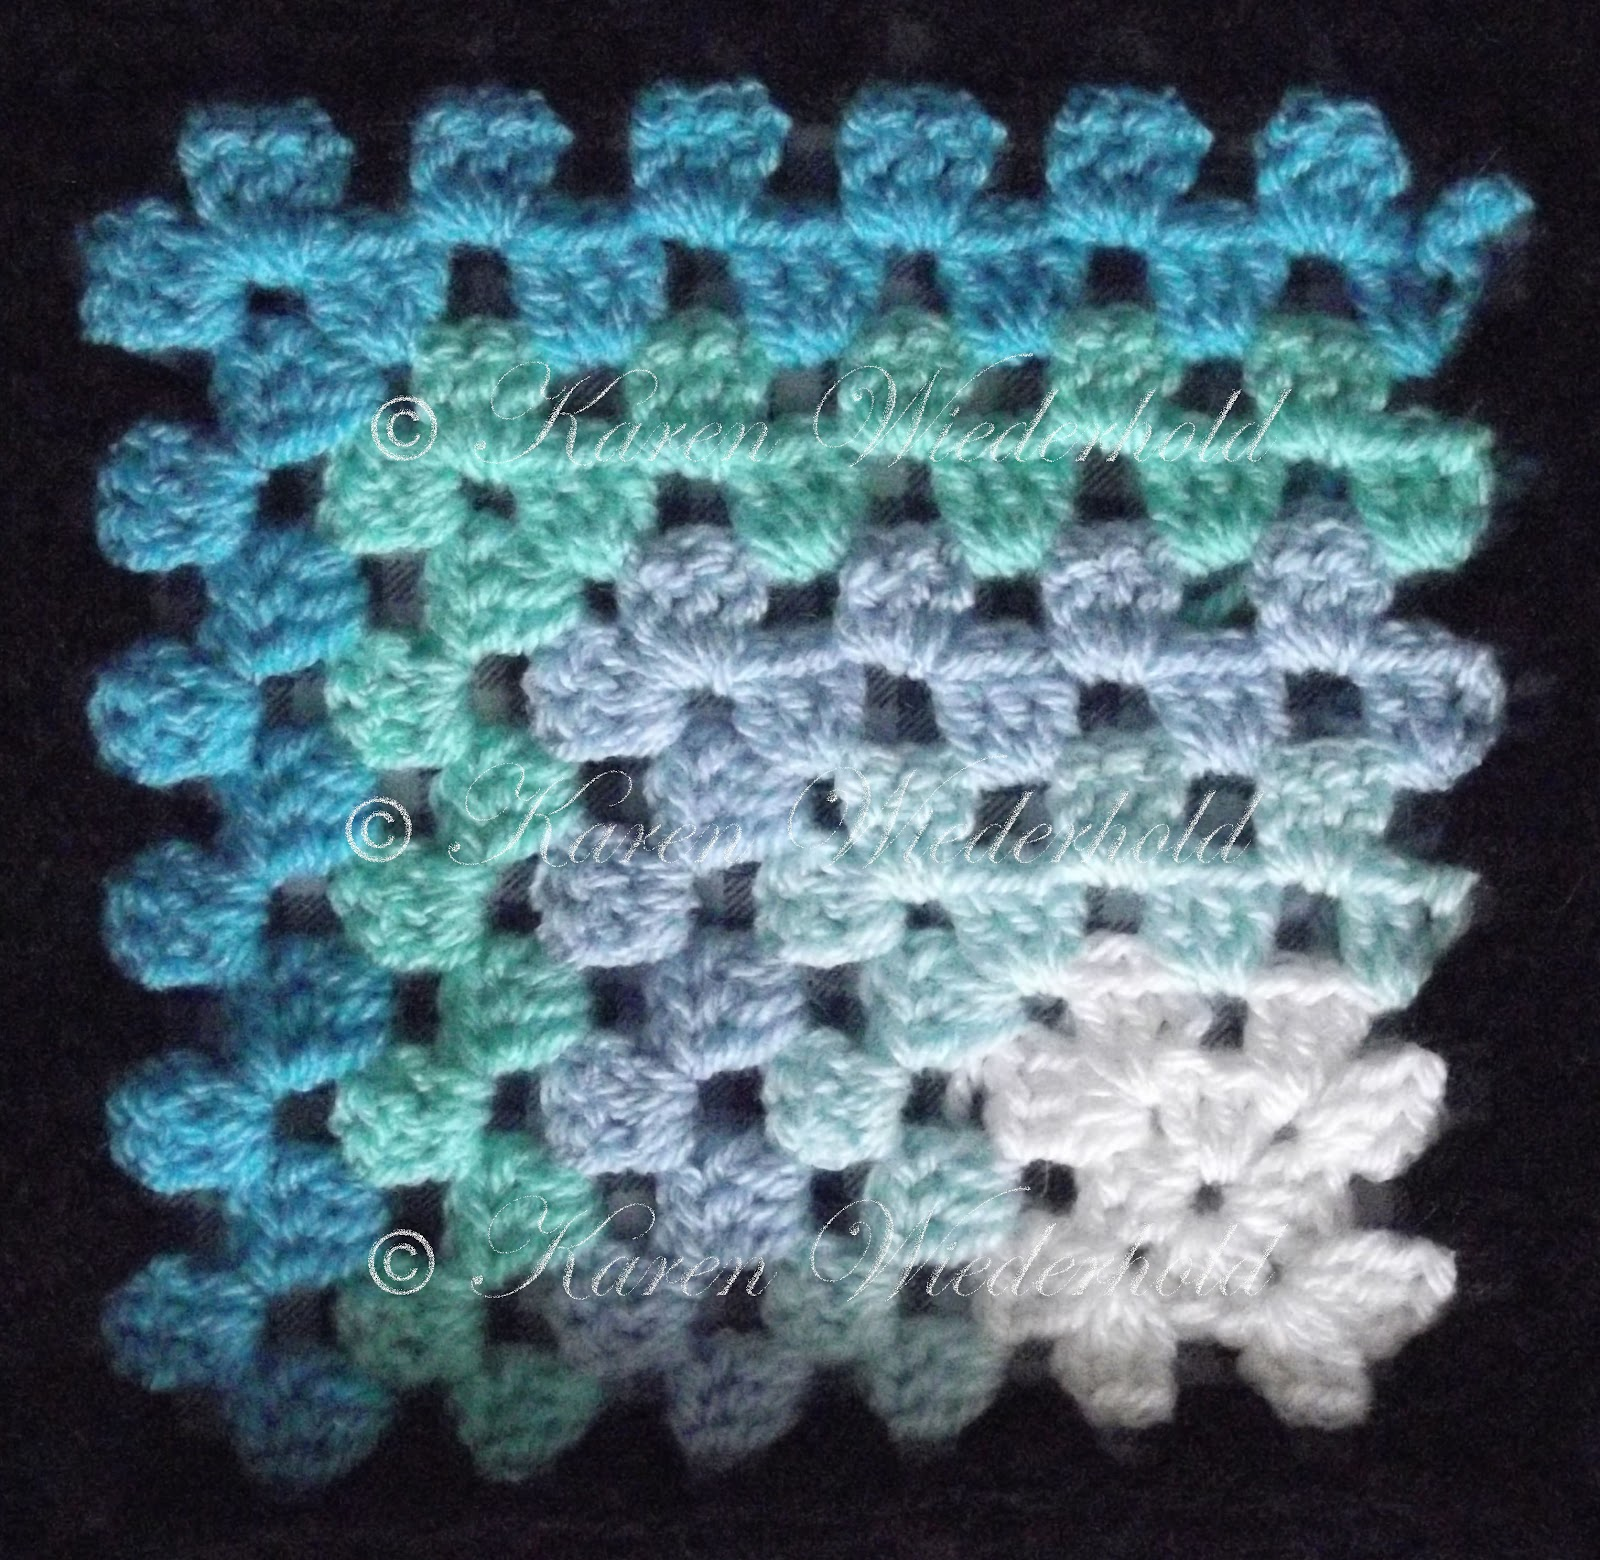 ... Granny Square Blanket - Free Crochet Pattern - Copyright 2013-2015